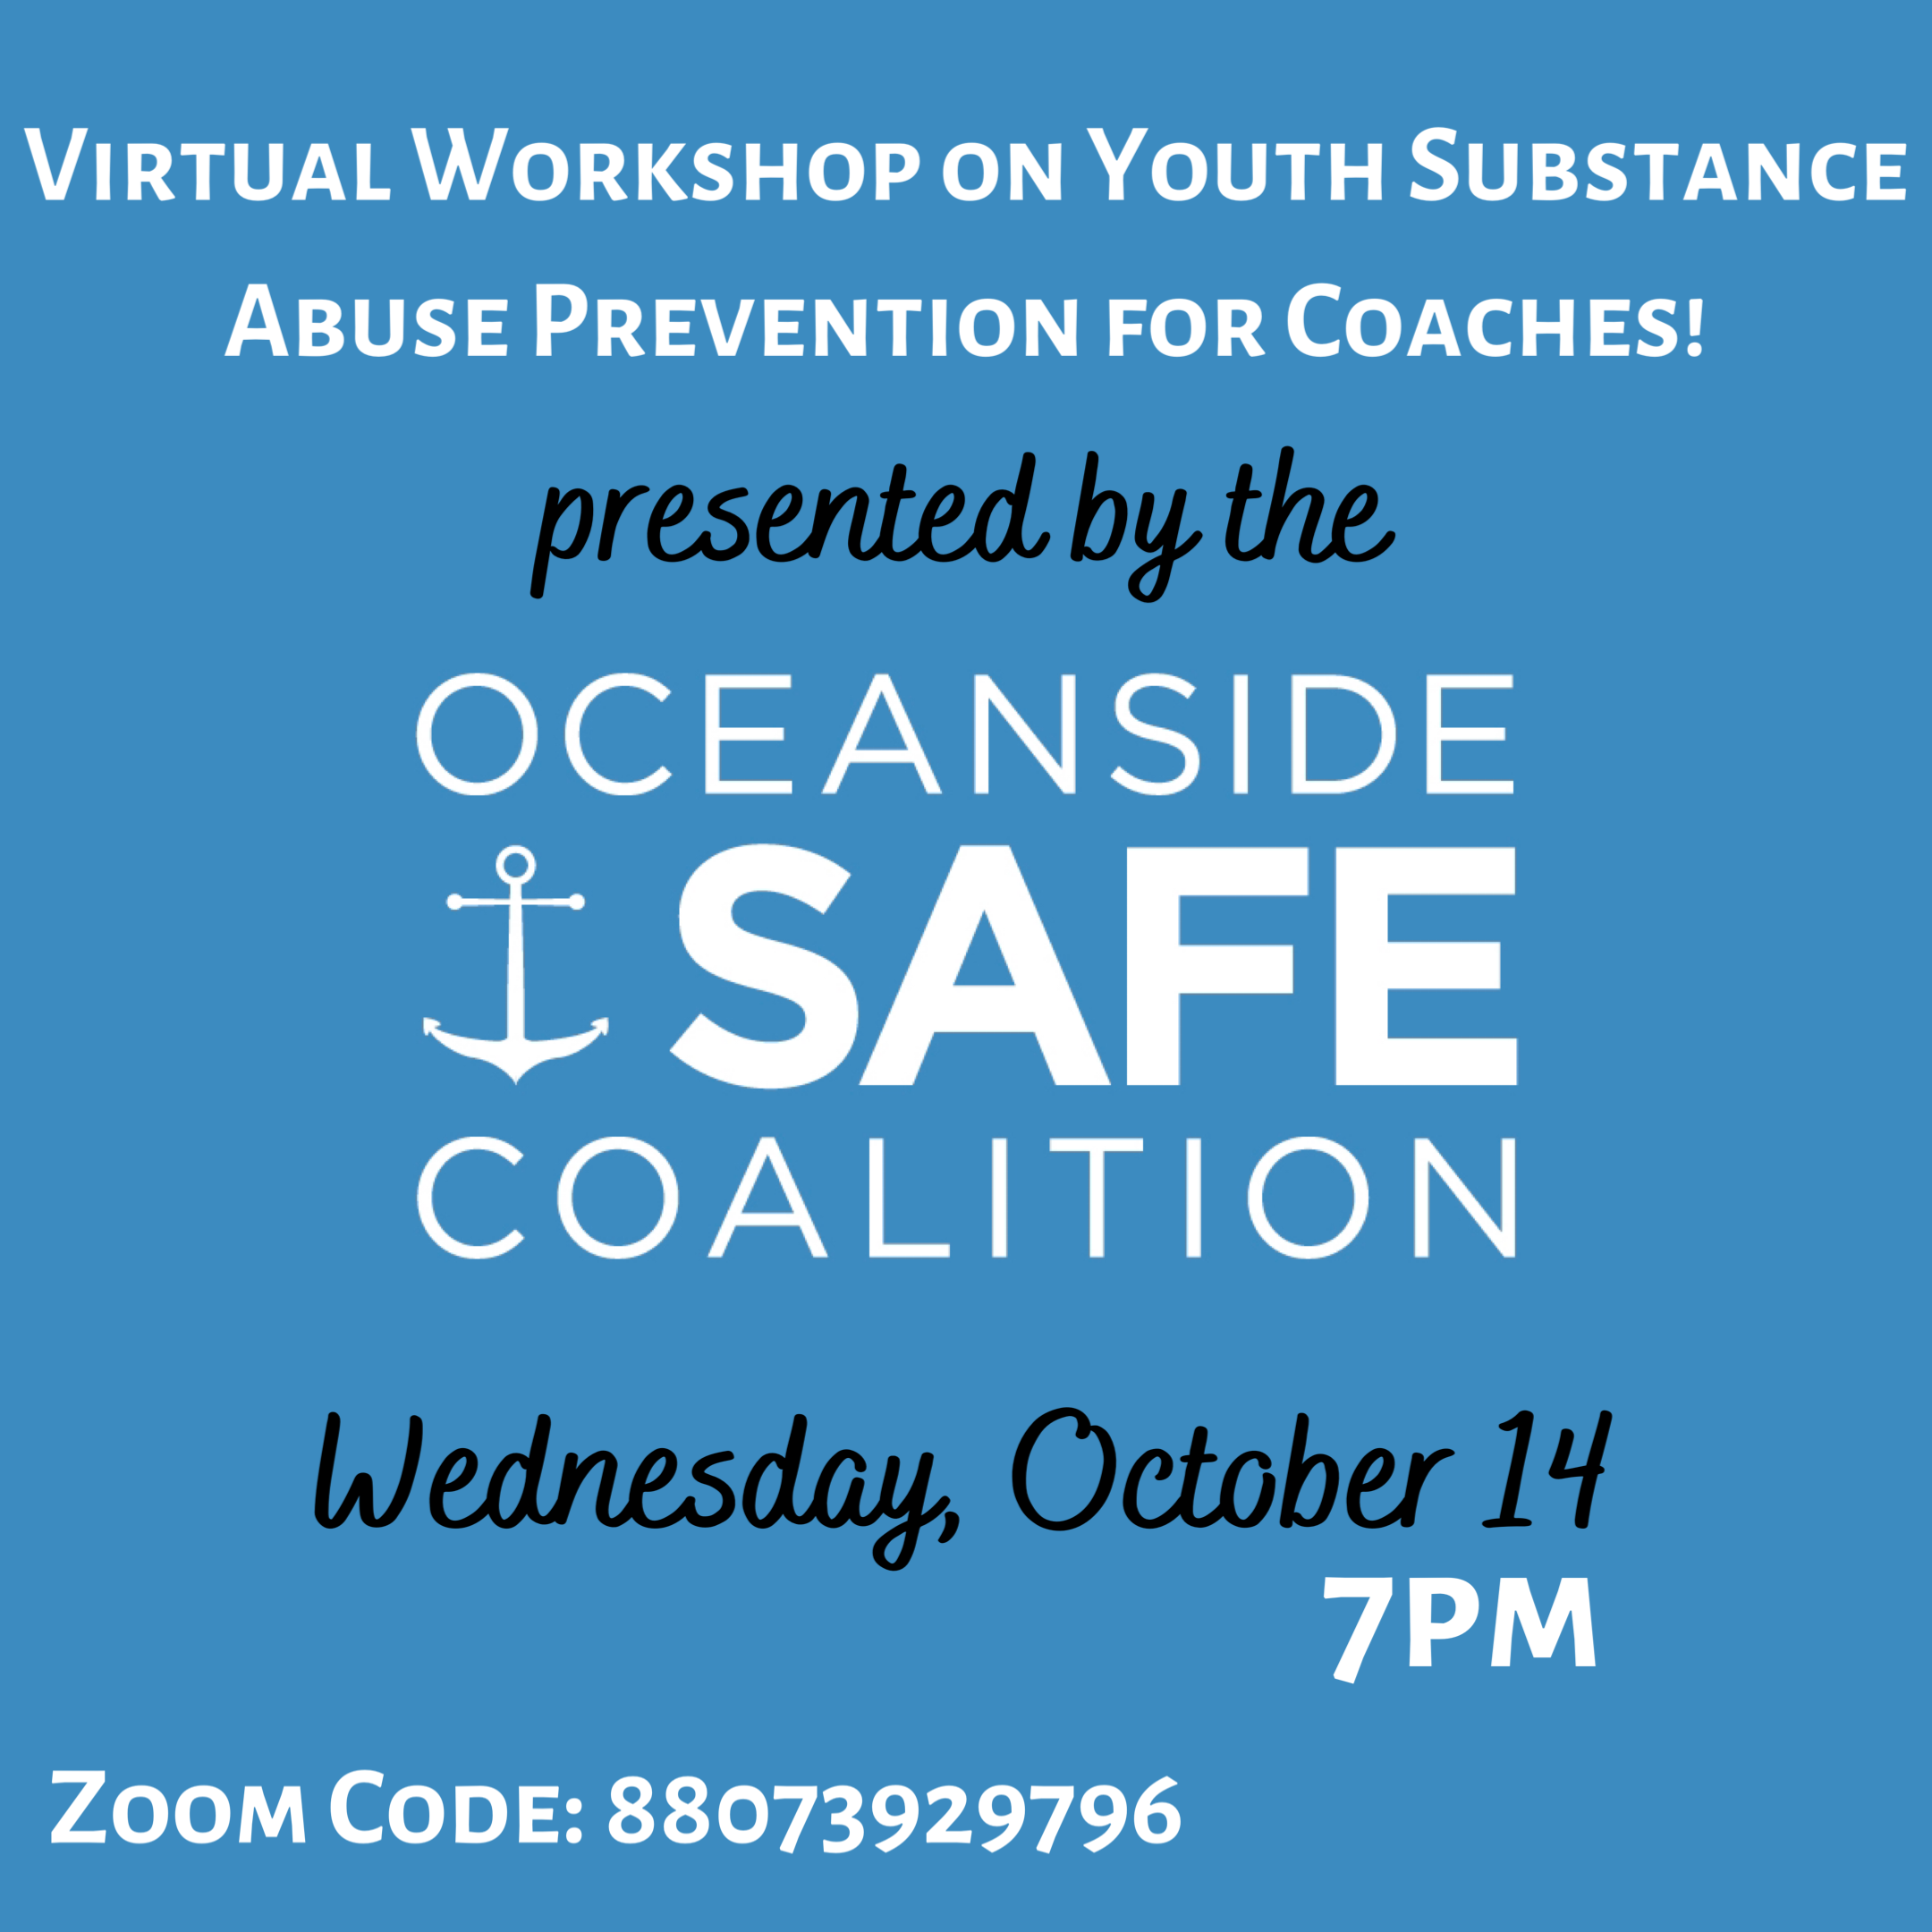 Youth Substance Abuse Prevention Workshop for Oceanside Coaches